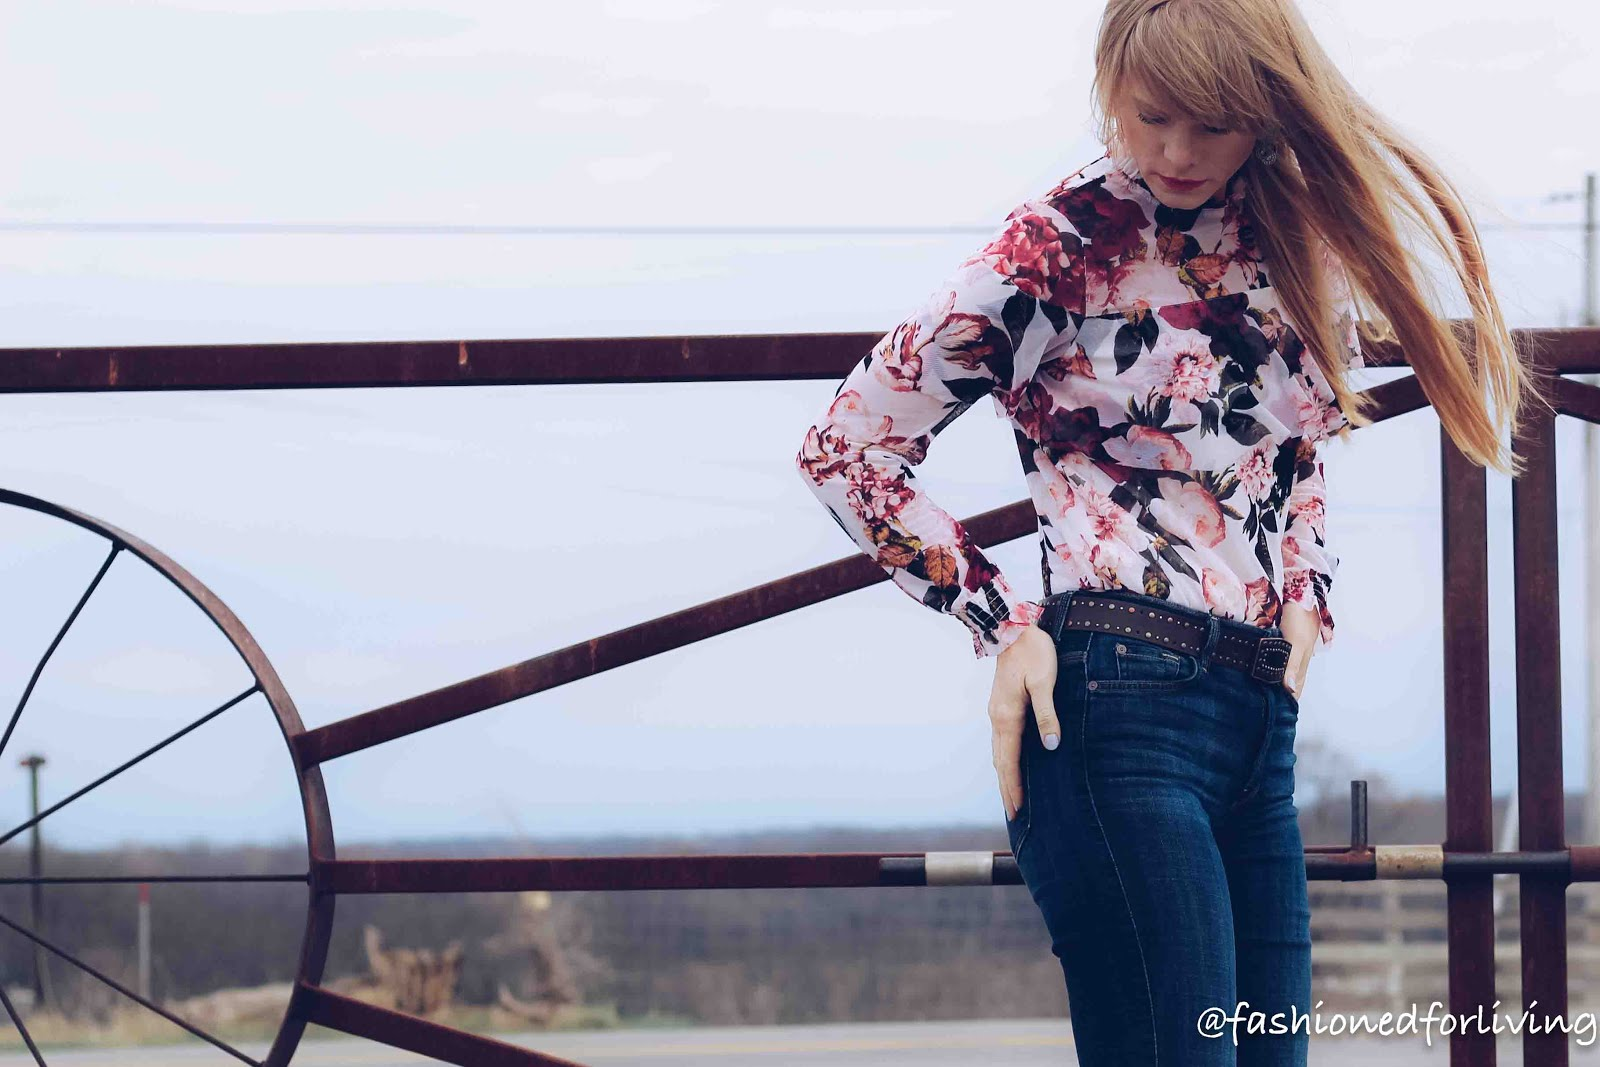 floral top and trouser jeans outfits. 7forallmankind jeans